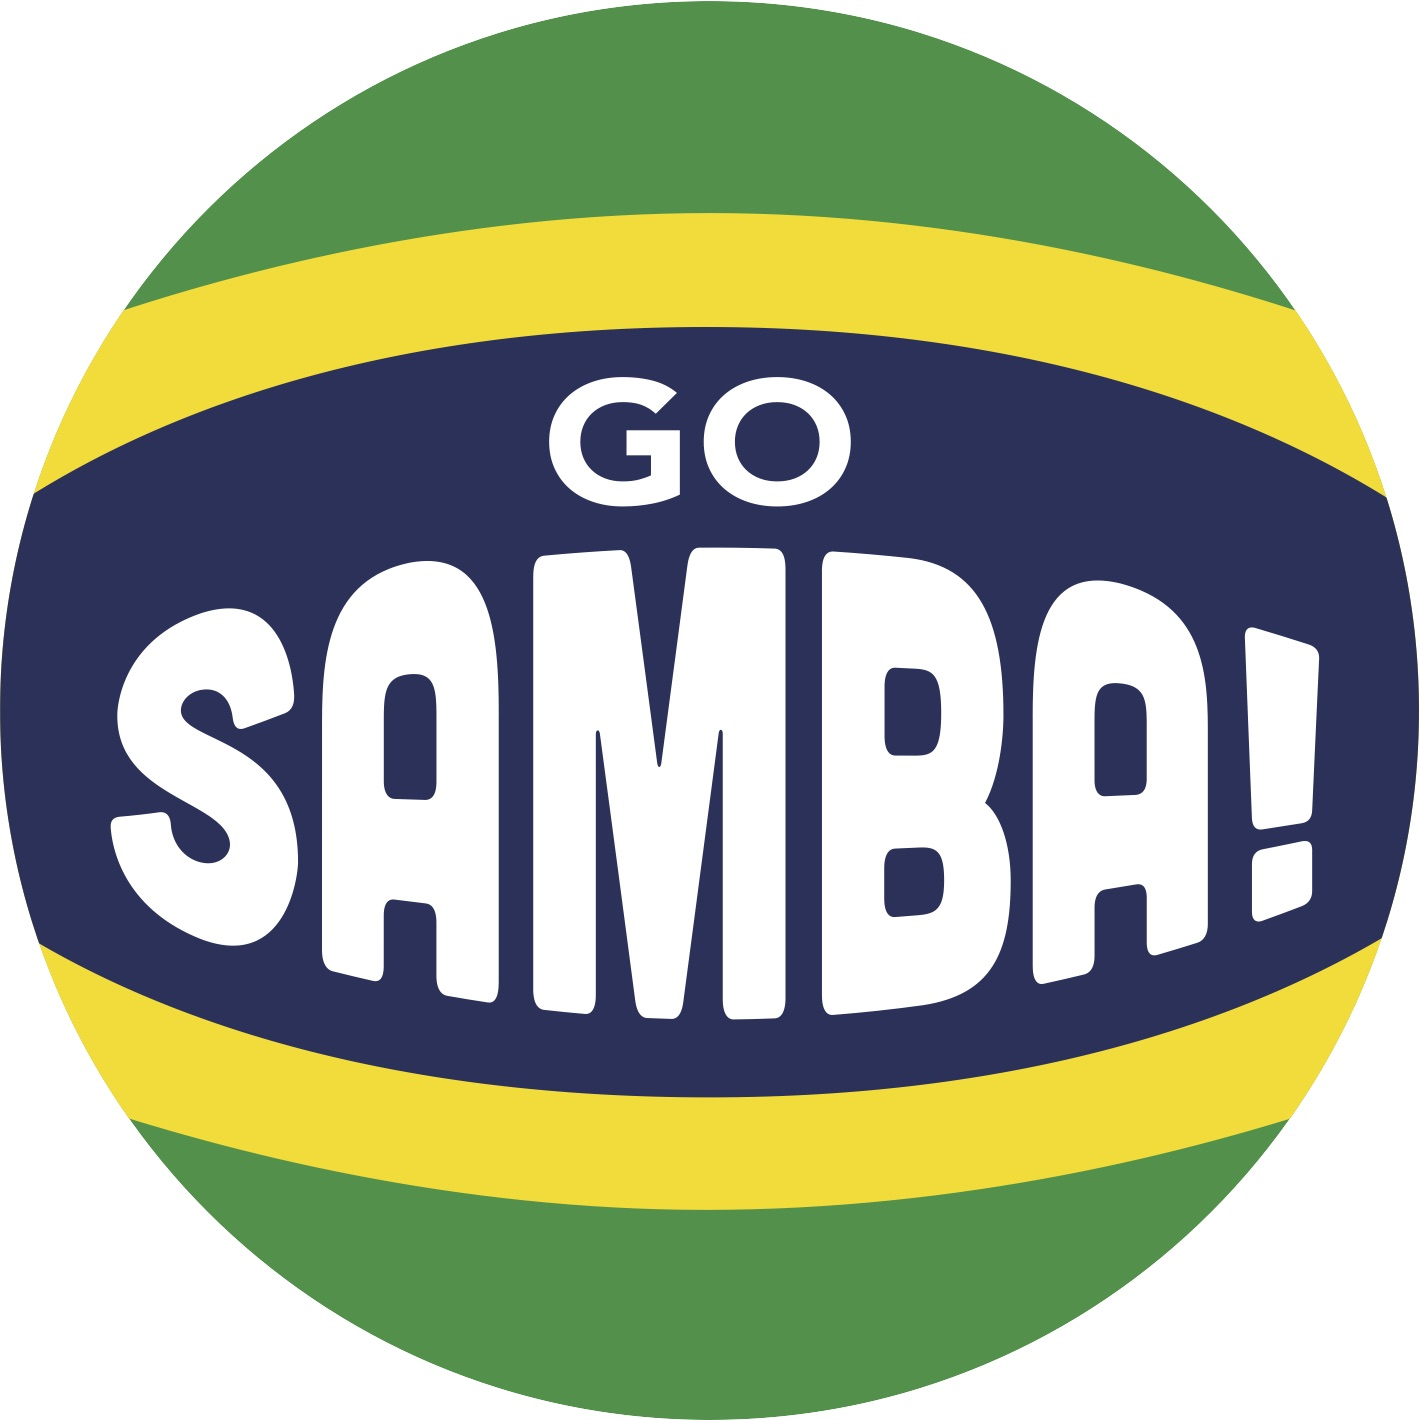 This episode sponsored by GoSamba.net - Samba drums from Brazil available in the USA!